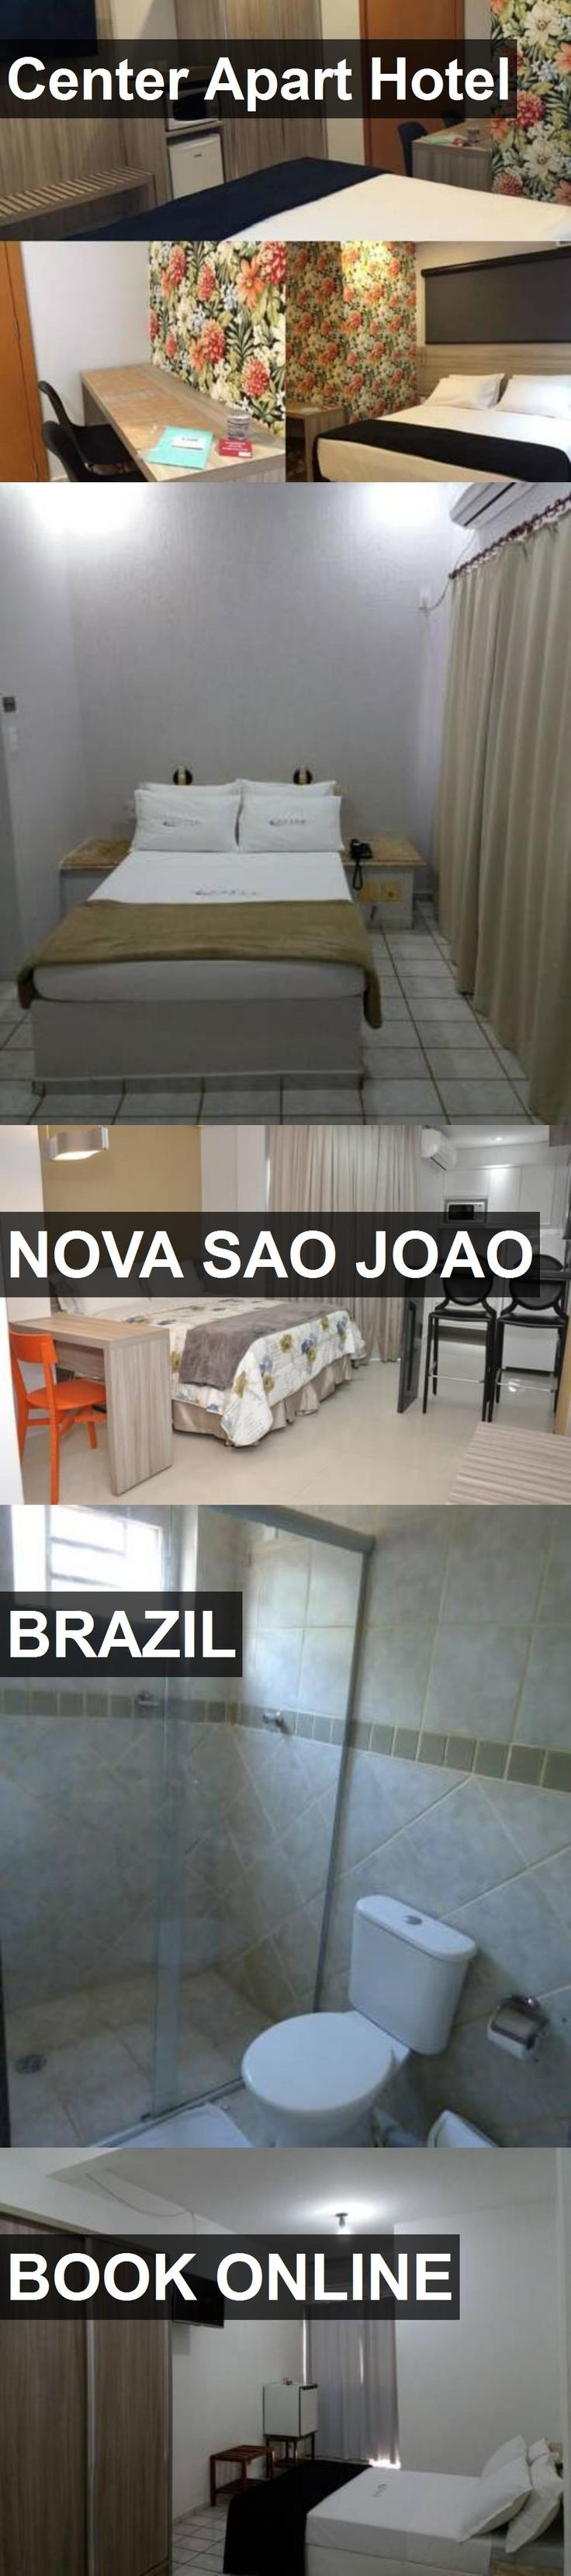 Center Apart Hotel in Nova Sao Joao, Brazil. For more information, photos, reviews and best prices please follow the link. #Brazil #NovaSaoJoao #travel #vacation #hotel